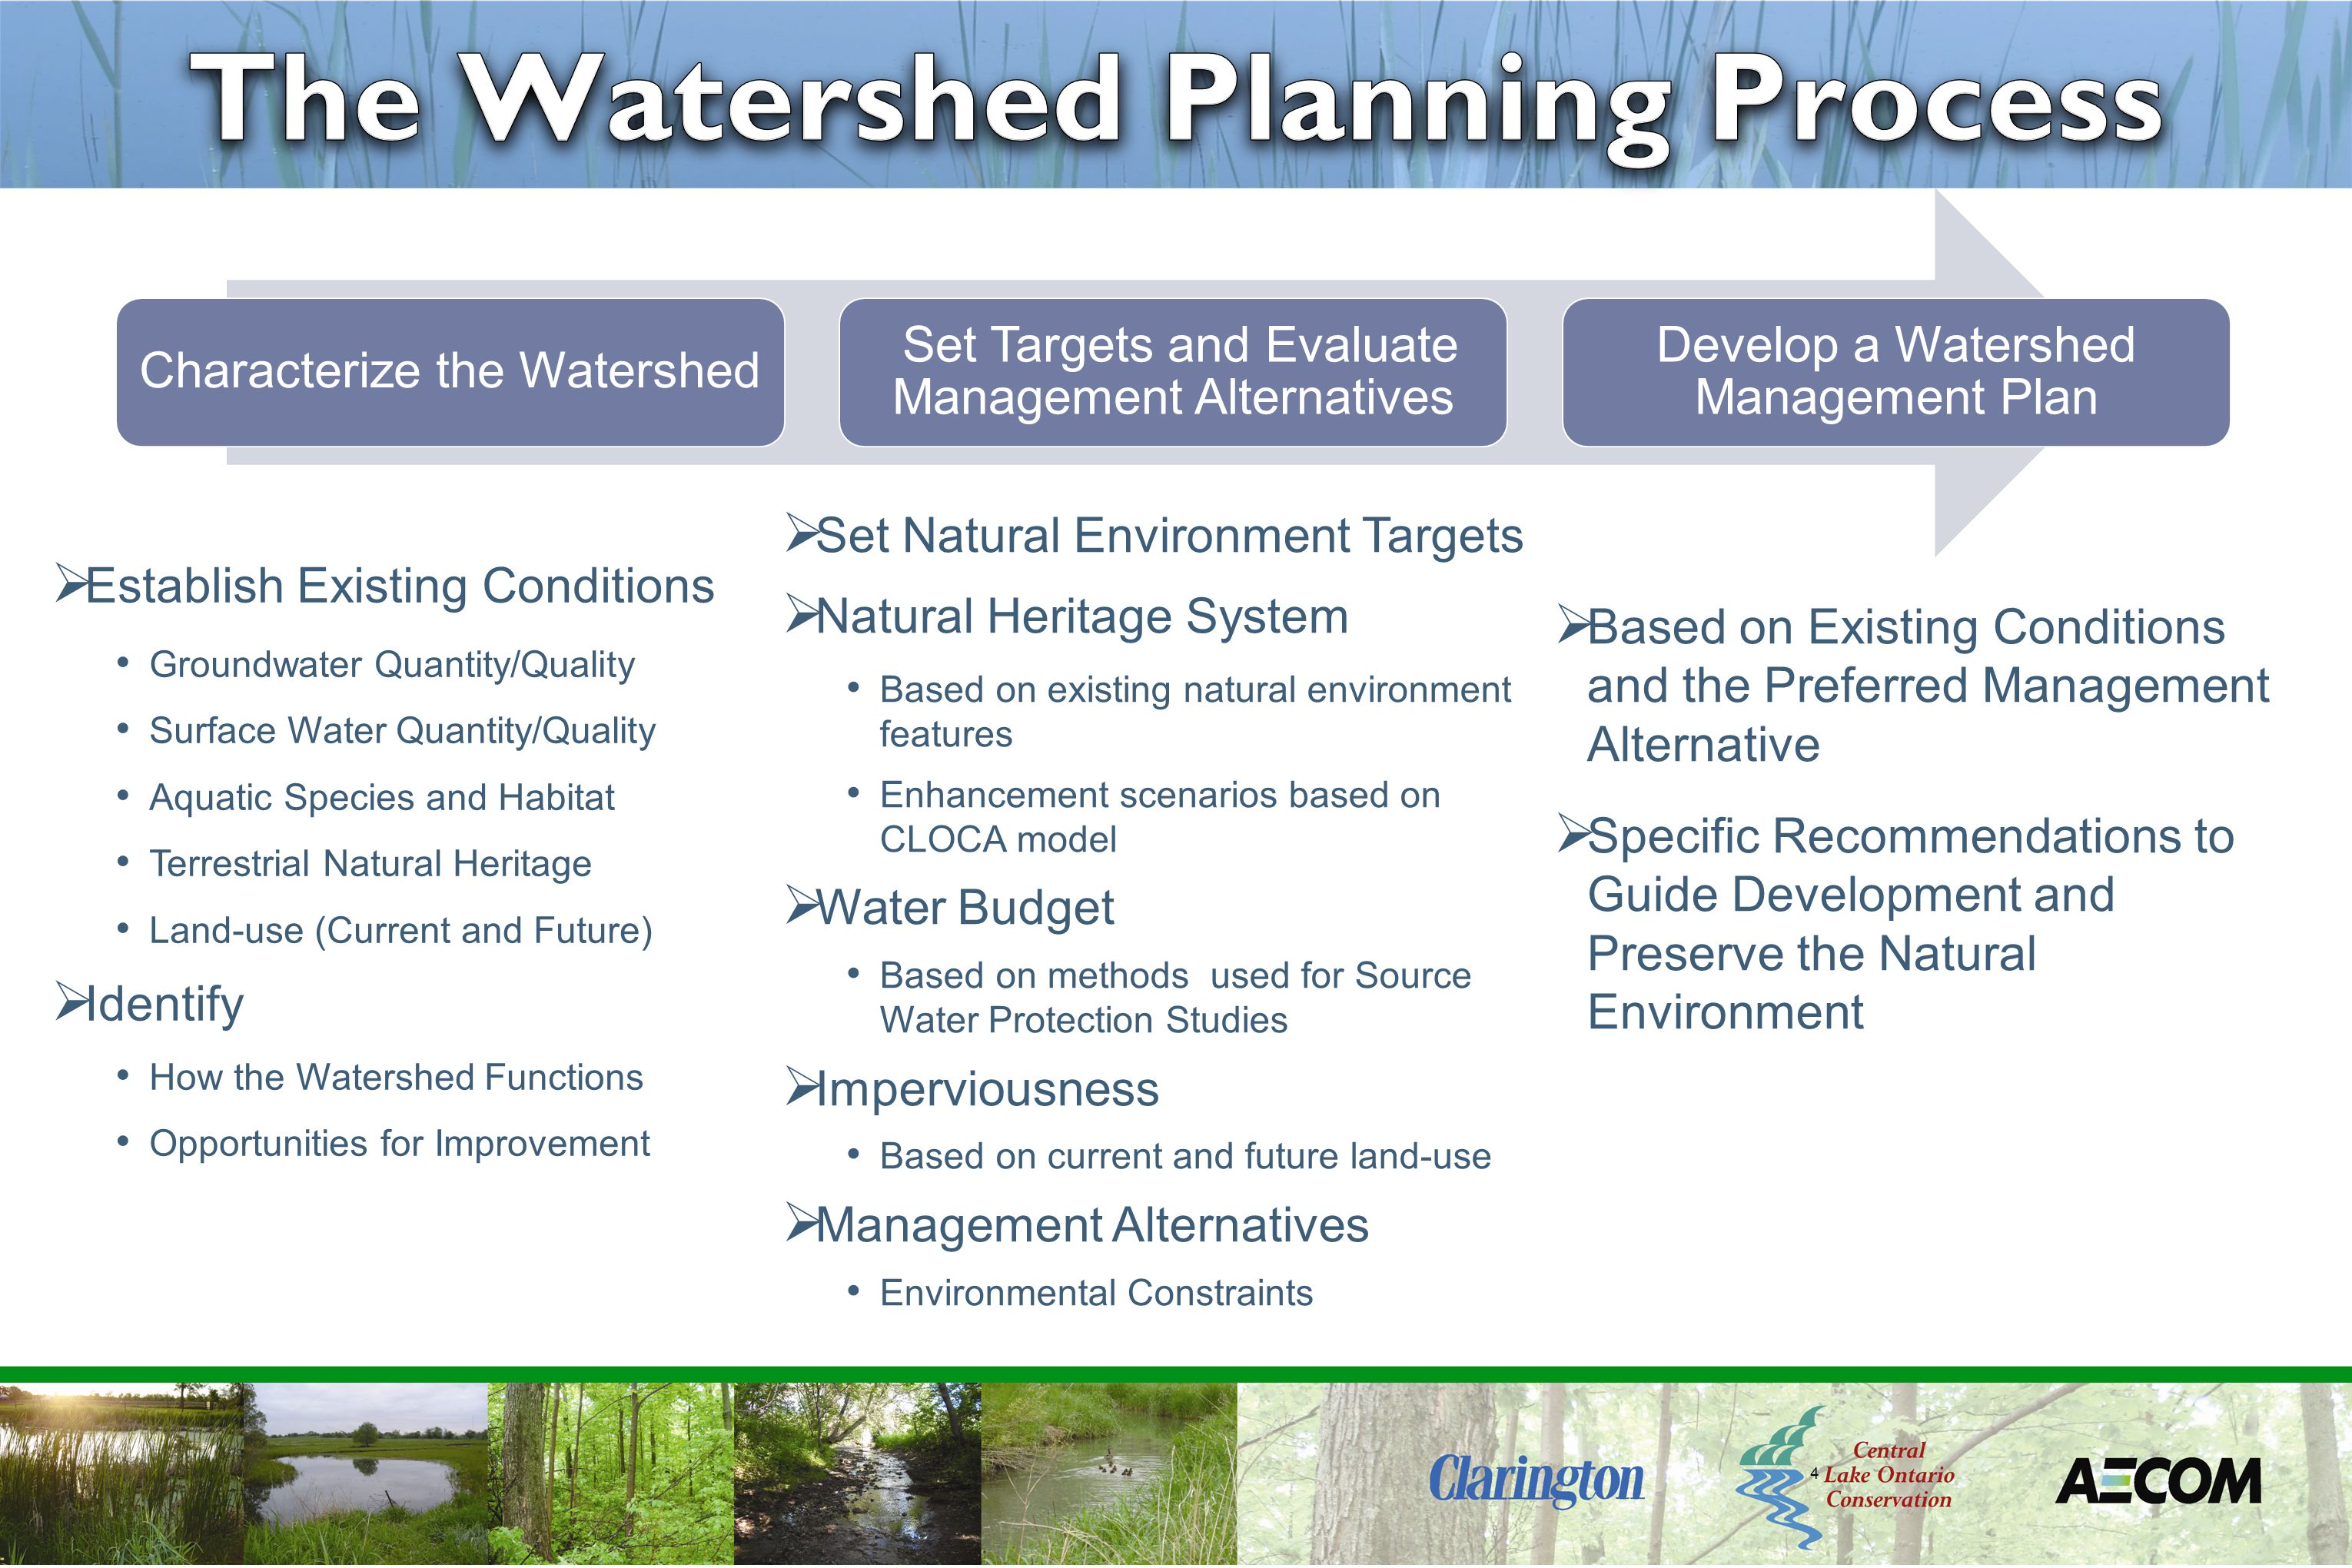 4  Establish Existing Conditions Groundwater Quantity/Quality Surface Water Quantity/Quality Aquatic Species and Habitat Terrestrial Natural Heritage Land-use (Current and Future)  Identify How the Watershed Functions Opportunities for Improvement Characterize the Watershed Set Targets and Evaluate Management Alternatives Develop a Watershed Management Plan  Based on Existing Conditions and the Preferred Management Alternative  Specific Recommendations to Guide Development and Preserve the Natural Environment  Set Natural Environment Targets  Natural Heritage System Based on existing natural environment features Enhancement scenarios based on CLOCA model  Water Budget Based on methods used for Source Water Protection Studies  Imperviousness Based on current and future land-use  Management Alternatives Environmental Constraints